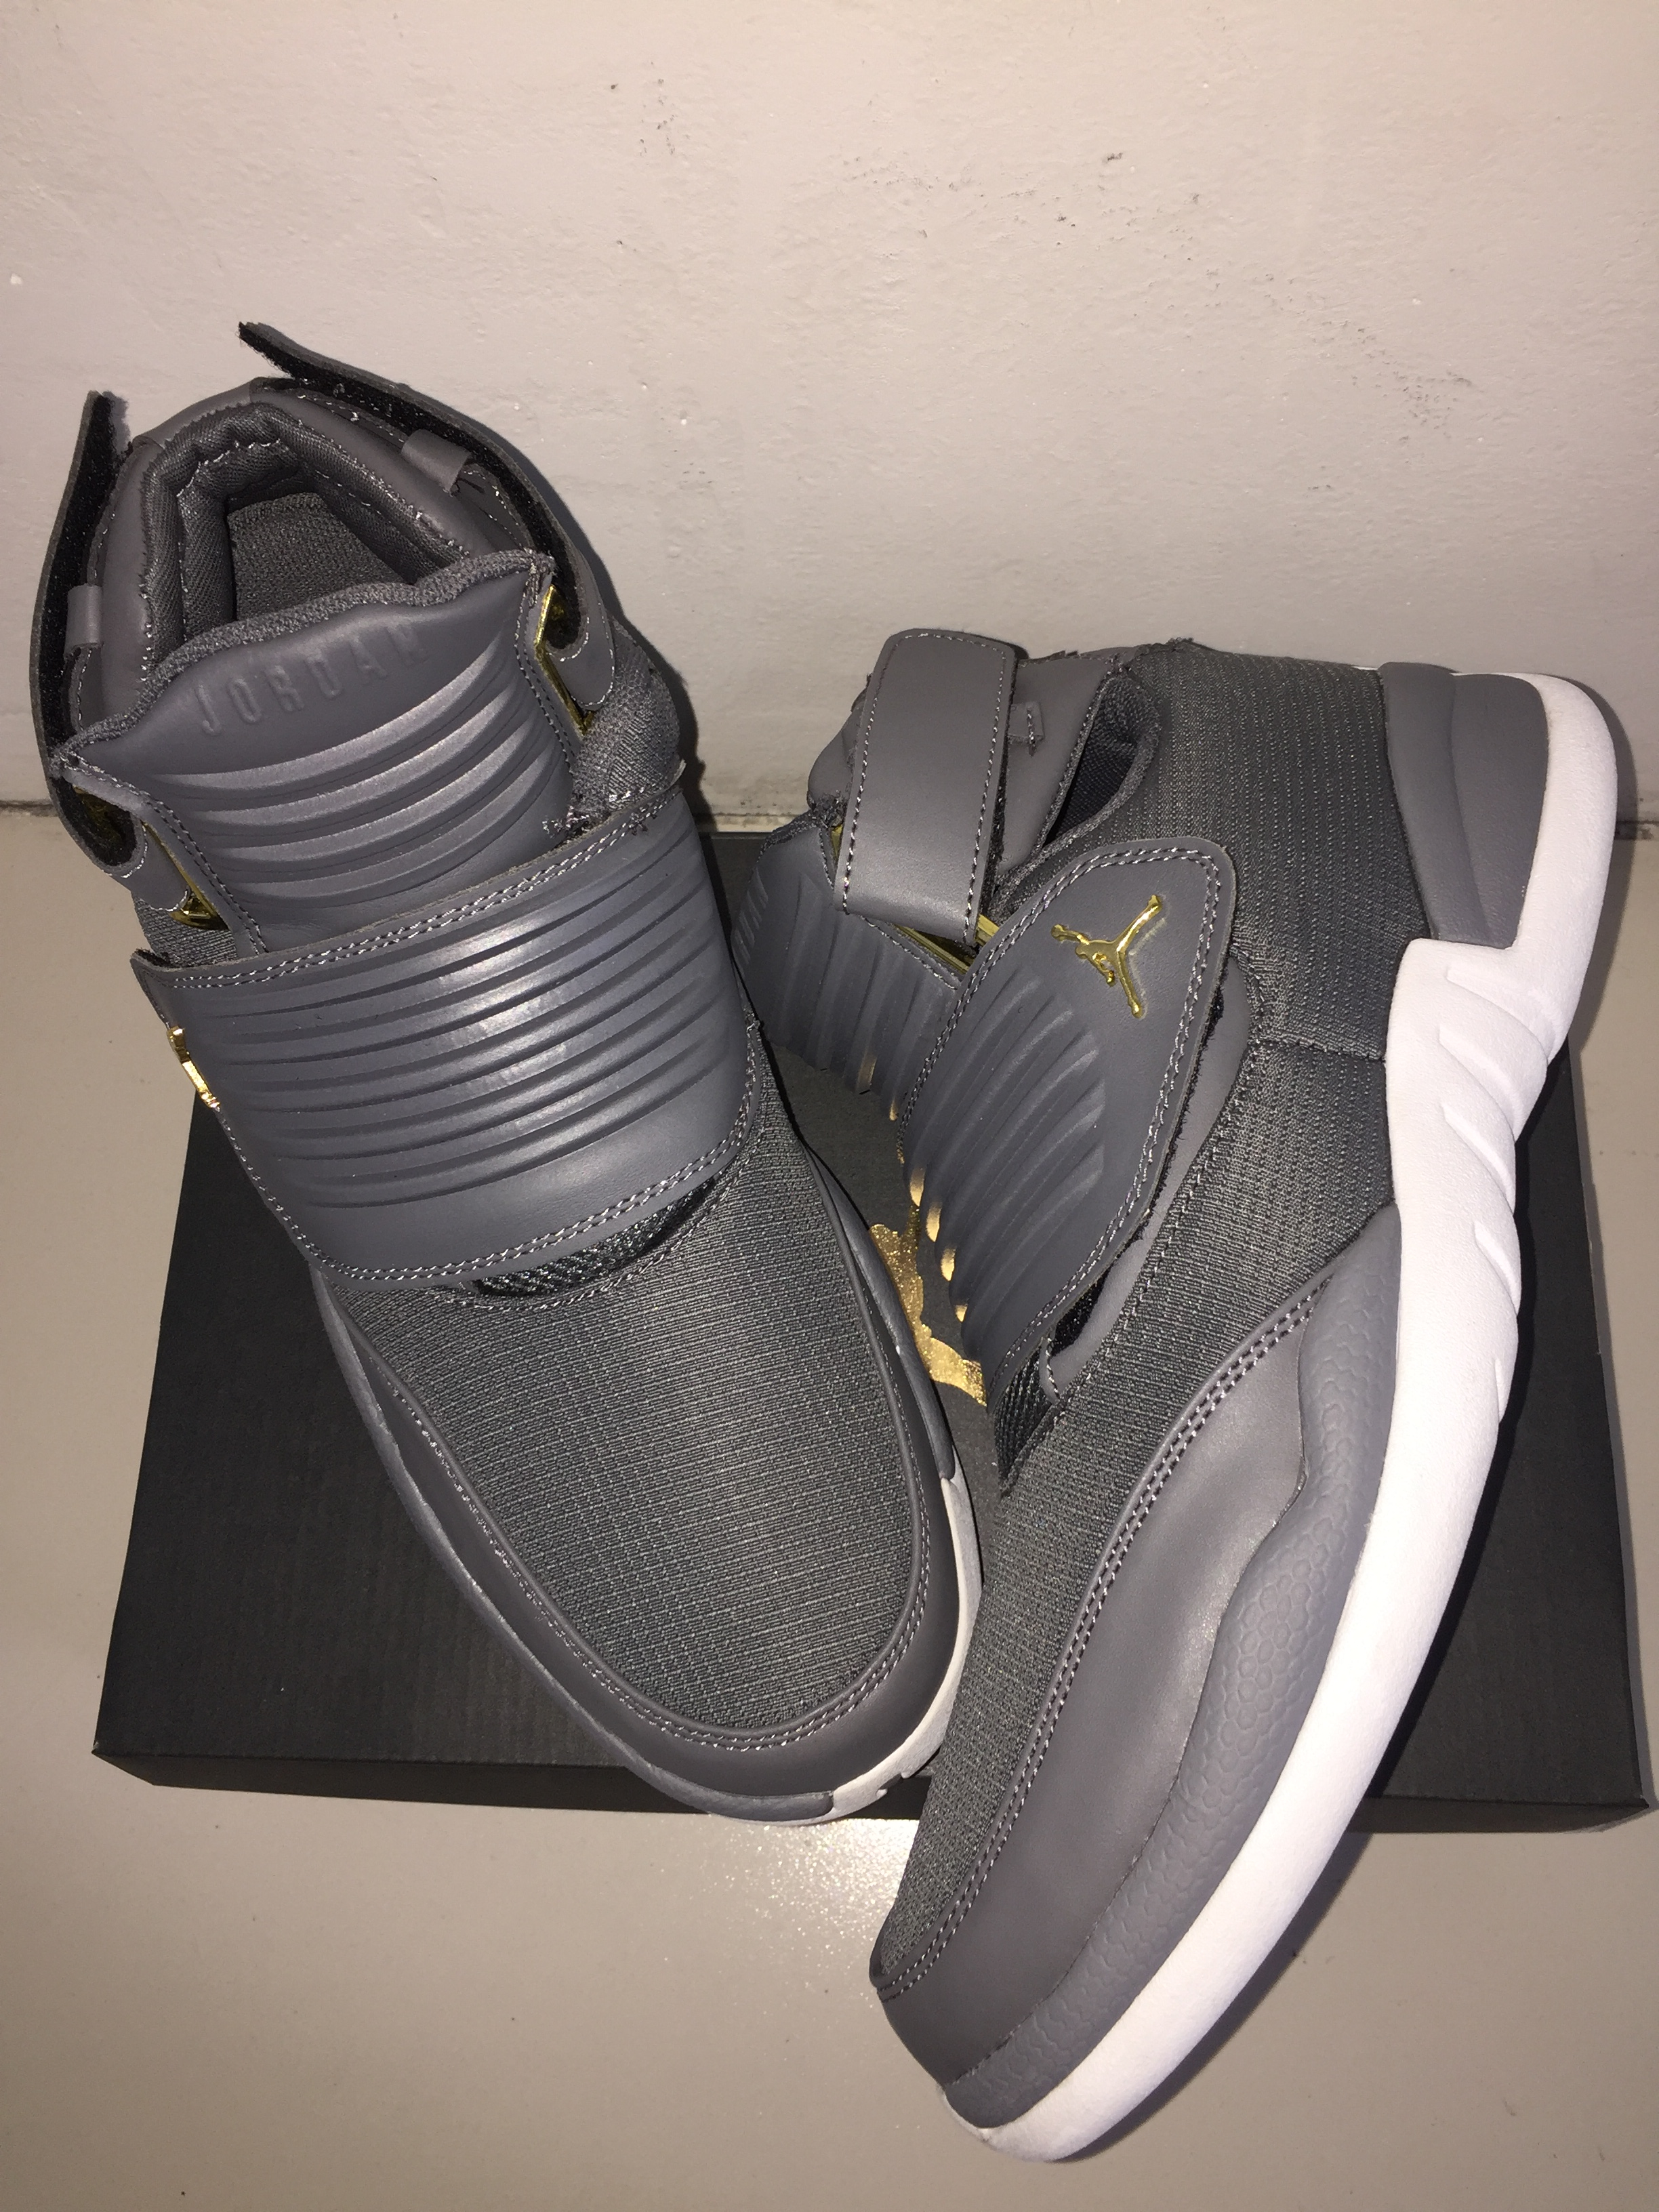 New Air Jordan Generation 23 Black White Shoes